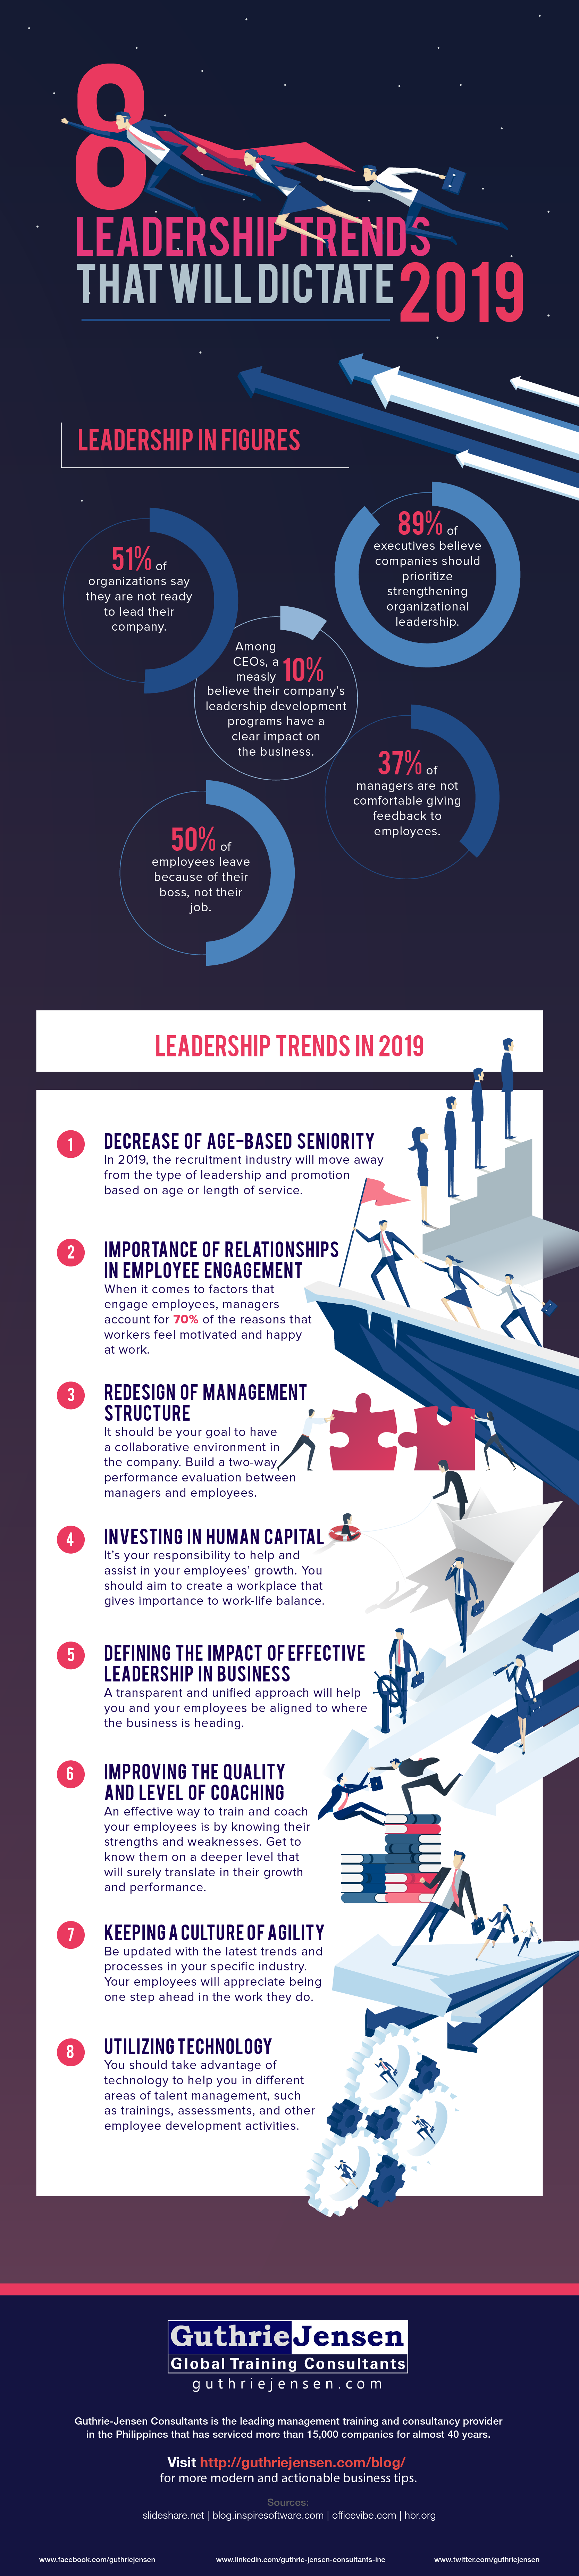 8 Leadership Trends That Will Dictate 2019-02